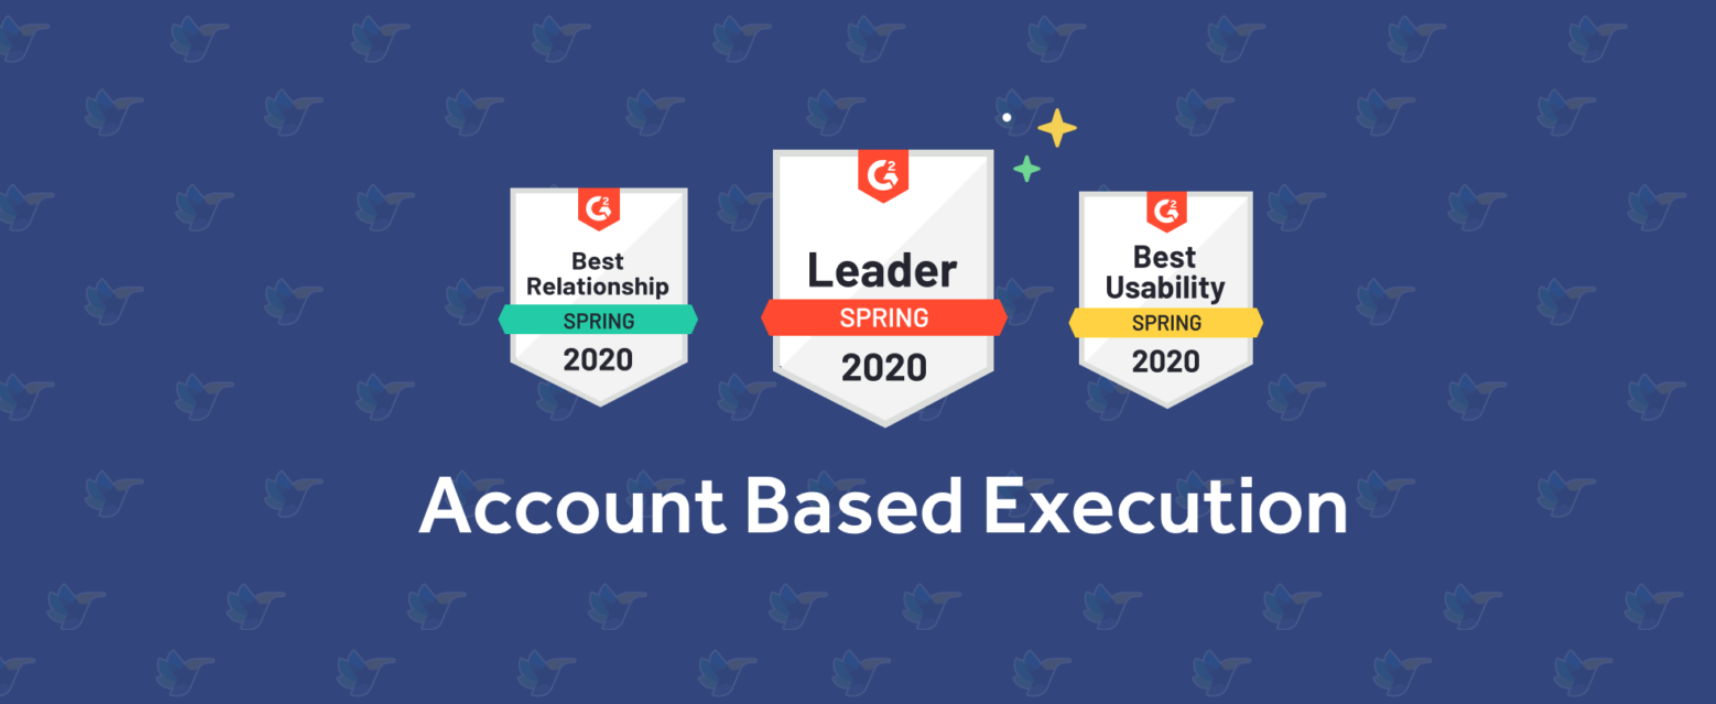 Alyce Further Extends Its Leadership Position as Top Account-Based Execution Software in the G2 Spring 2020 Grid Report |